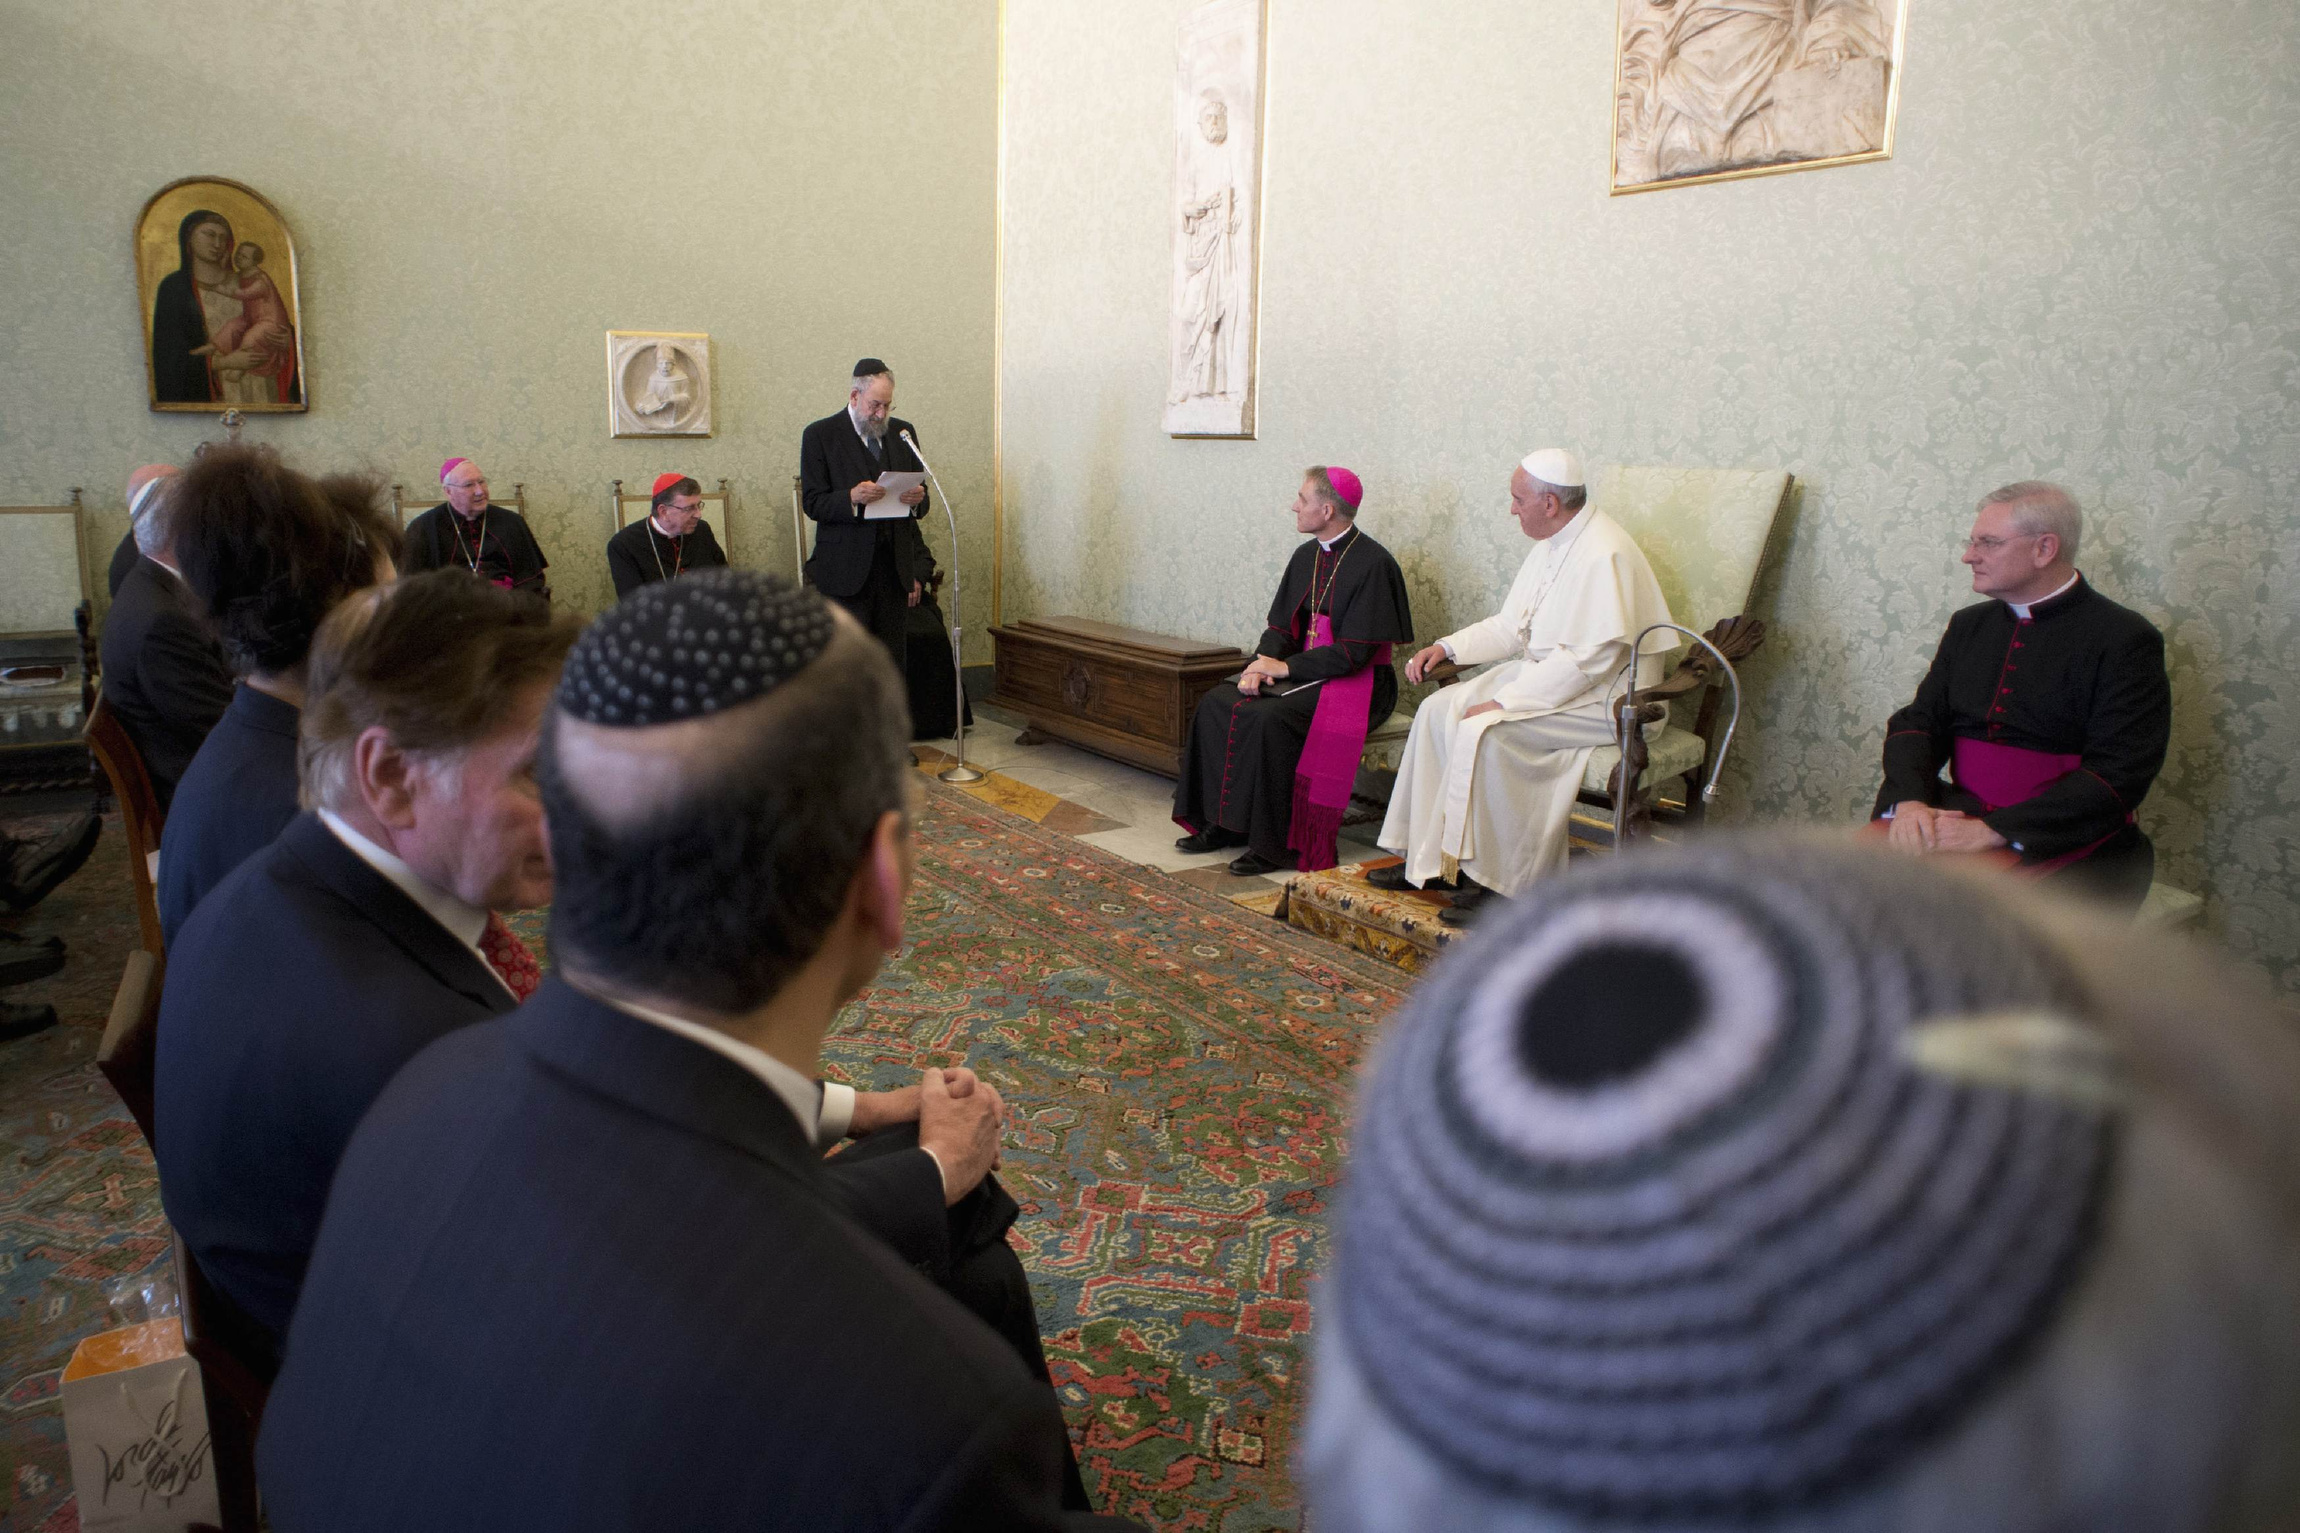 Pope Francis attends private audience with the International Jewish Committee on Interreligious Consultations at Vatican